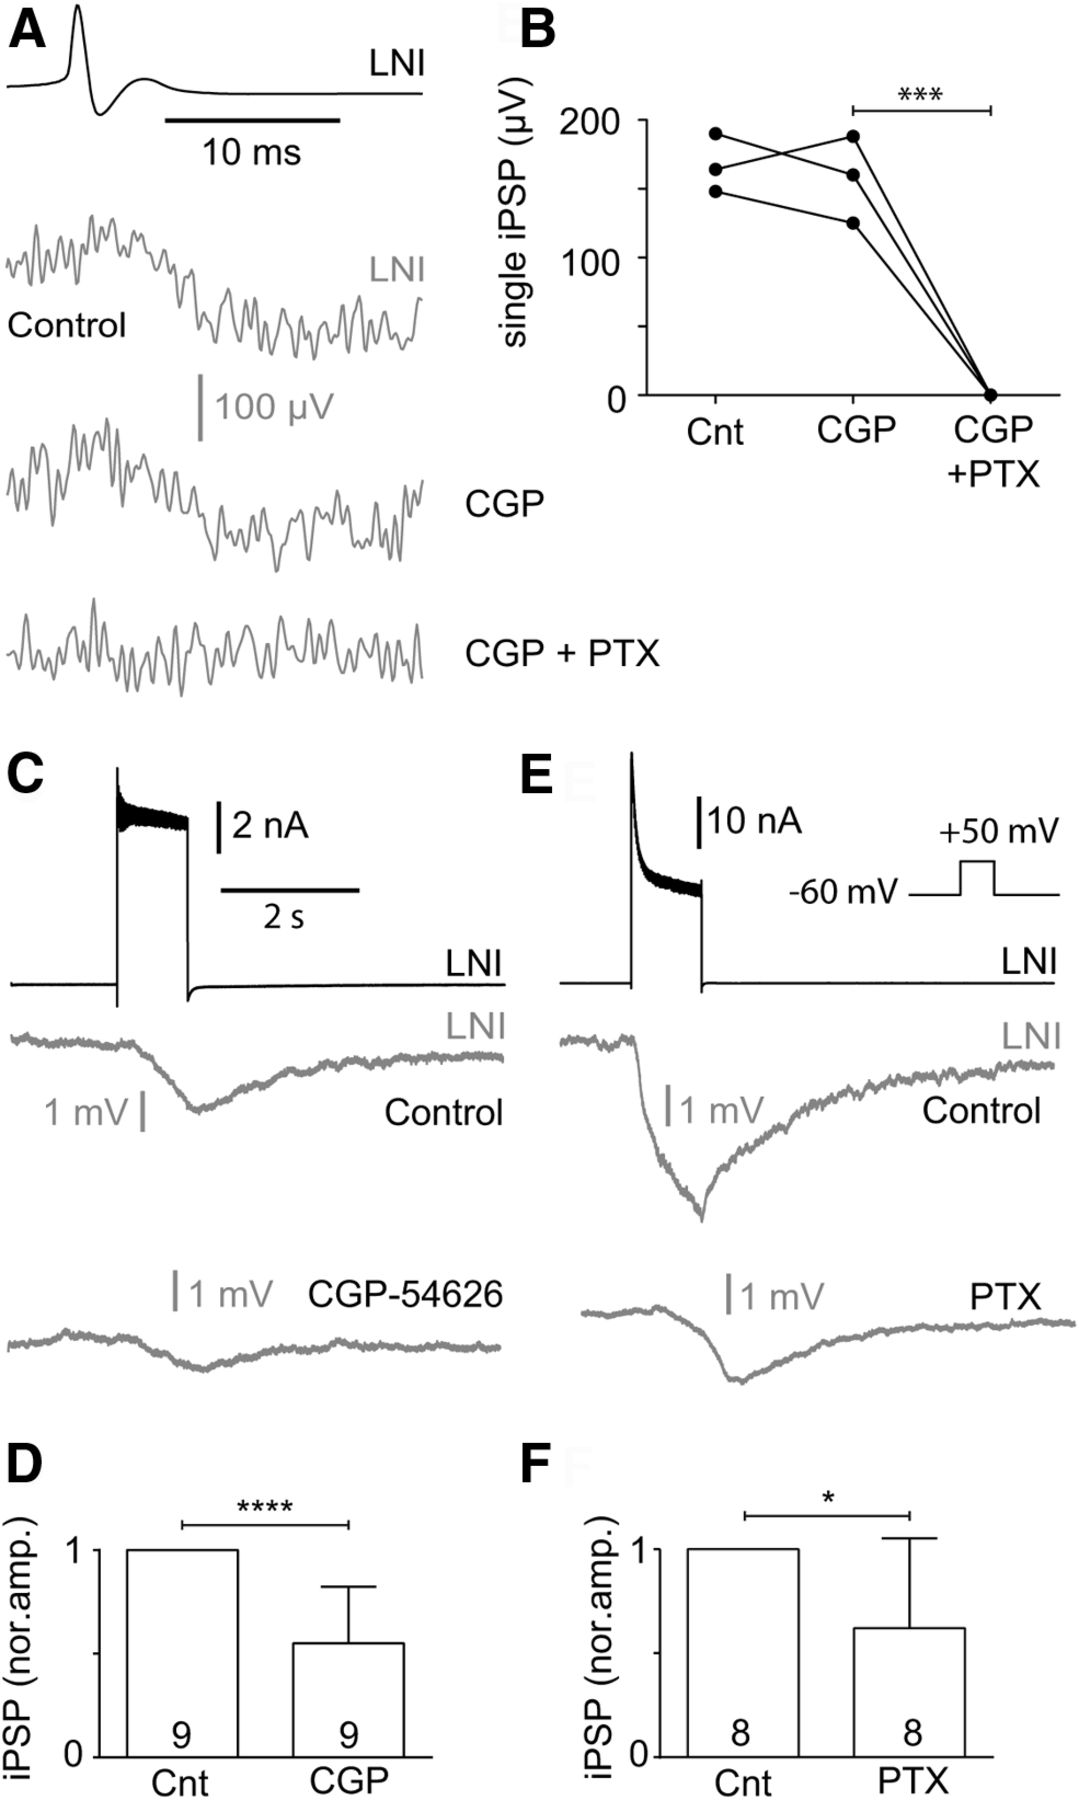 Rapid and Slow Chemical Synaptic Interactions of Cholinergic